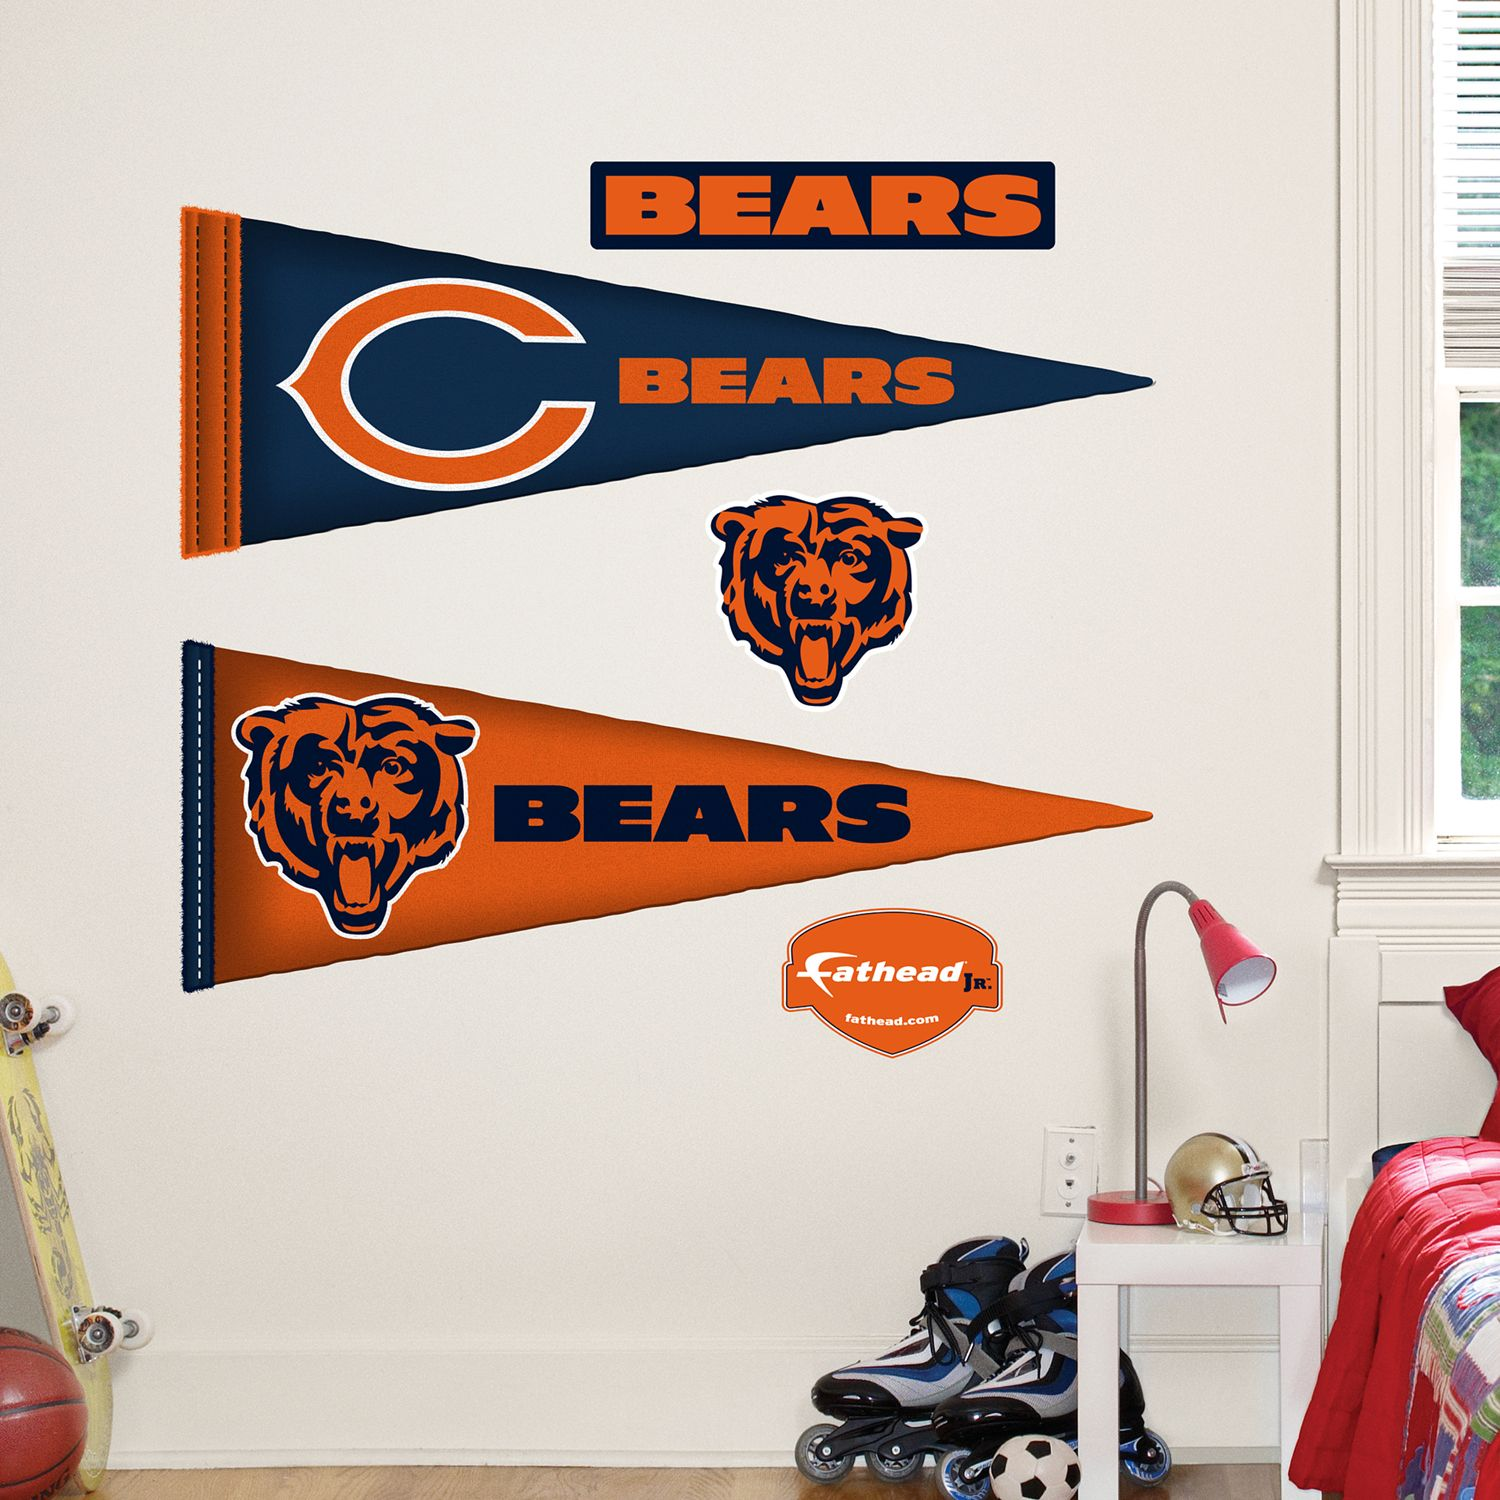 & Chicago Bears Pennant Wall Decals by Fathead Jr.